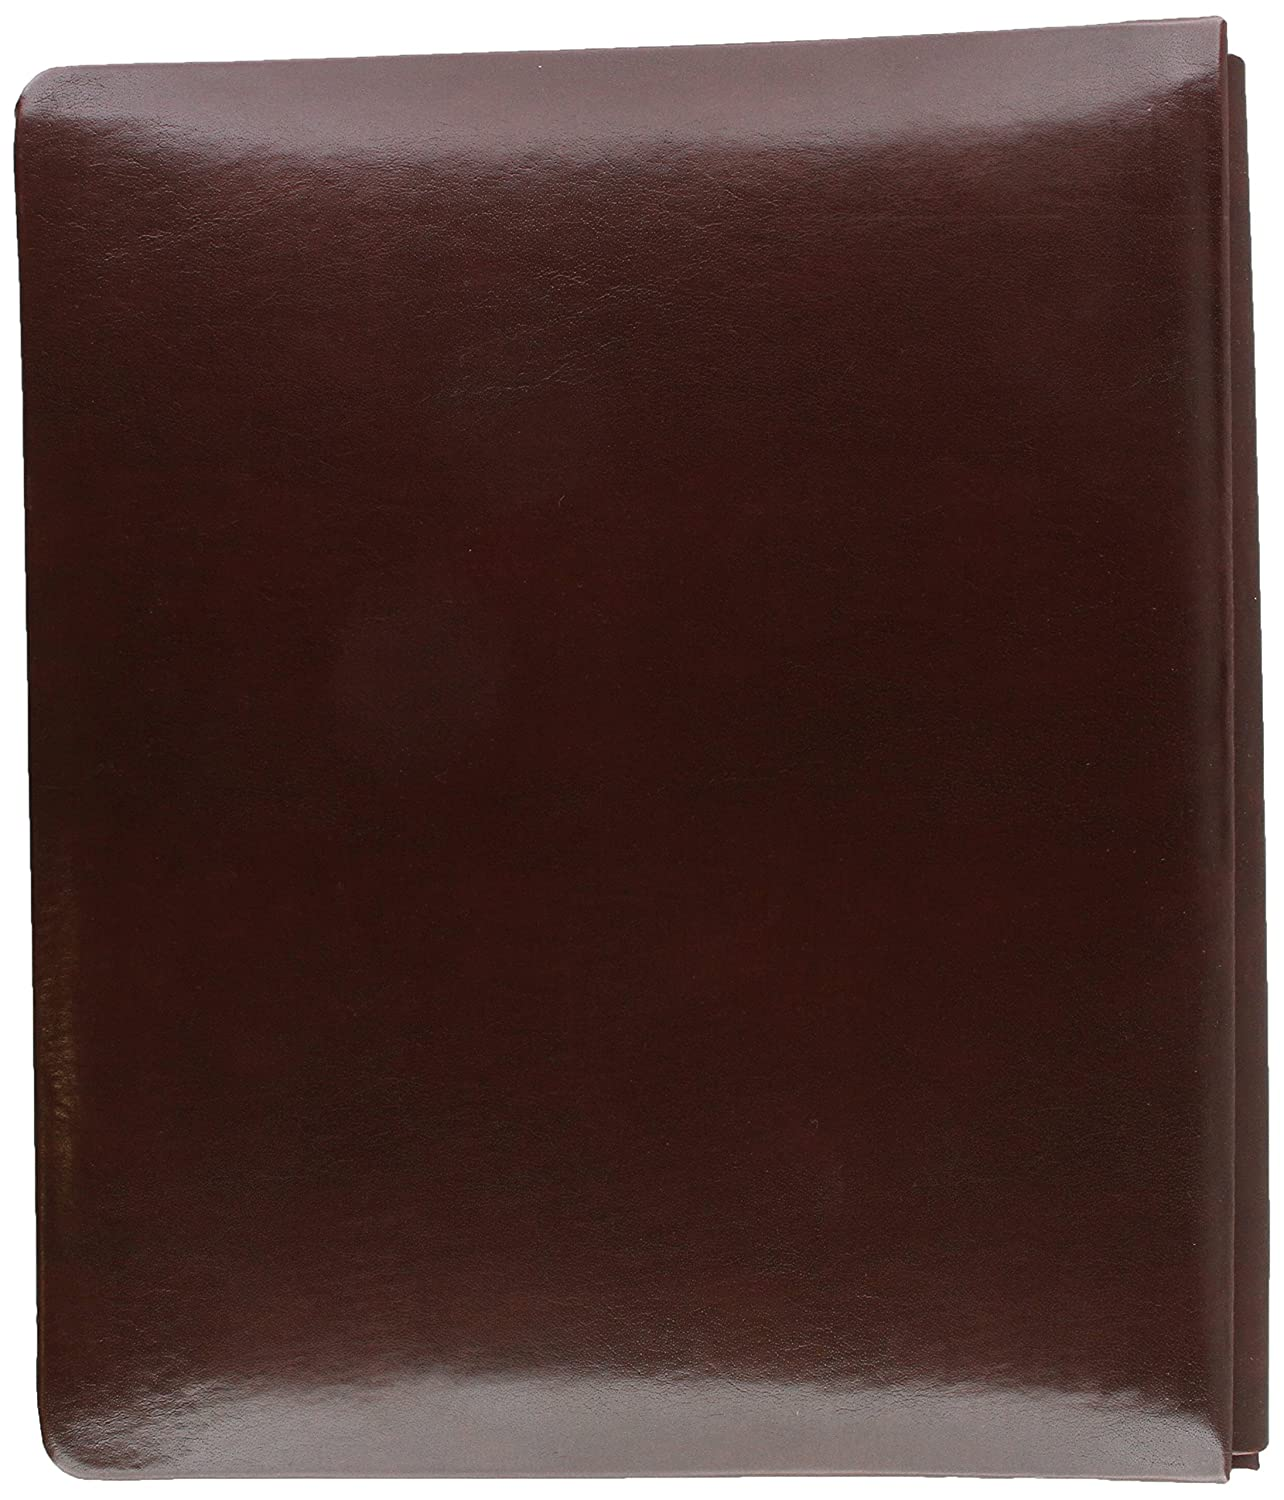 Pioneer Photo Albums 20-Page Family Treasures Deluxe Burgundy Bonded Leather Cover Scrapbook for 8.5 x 11-Inch Pages FTM-811L/BG